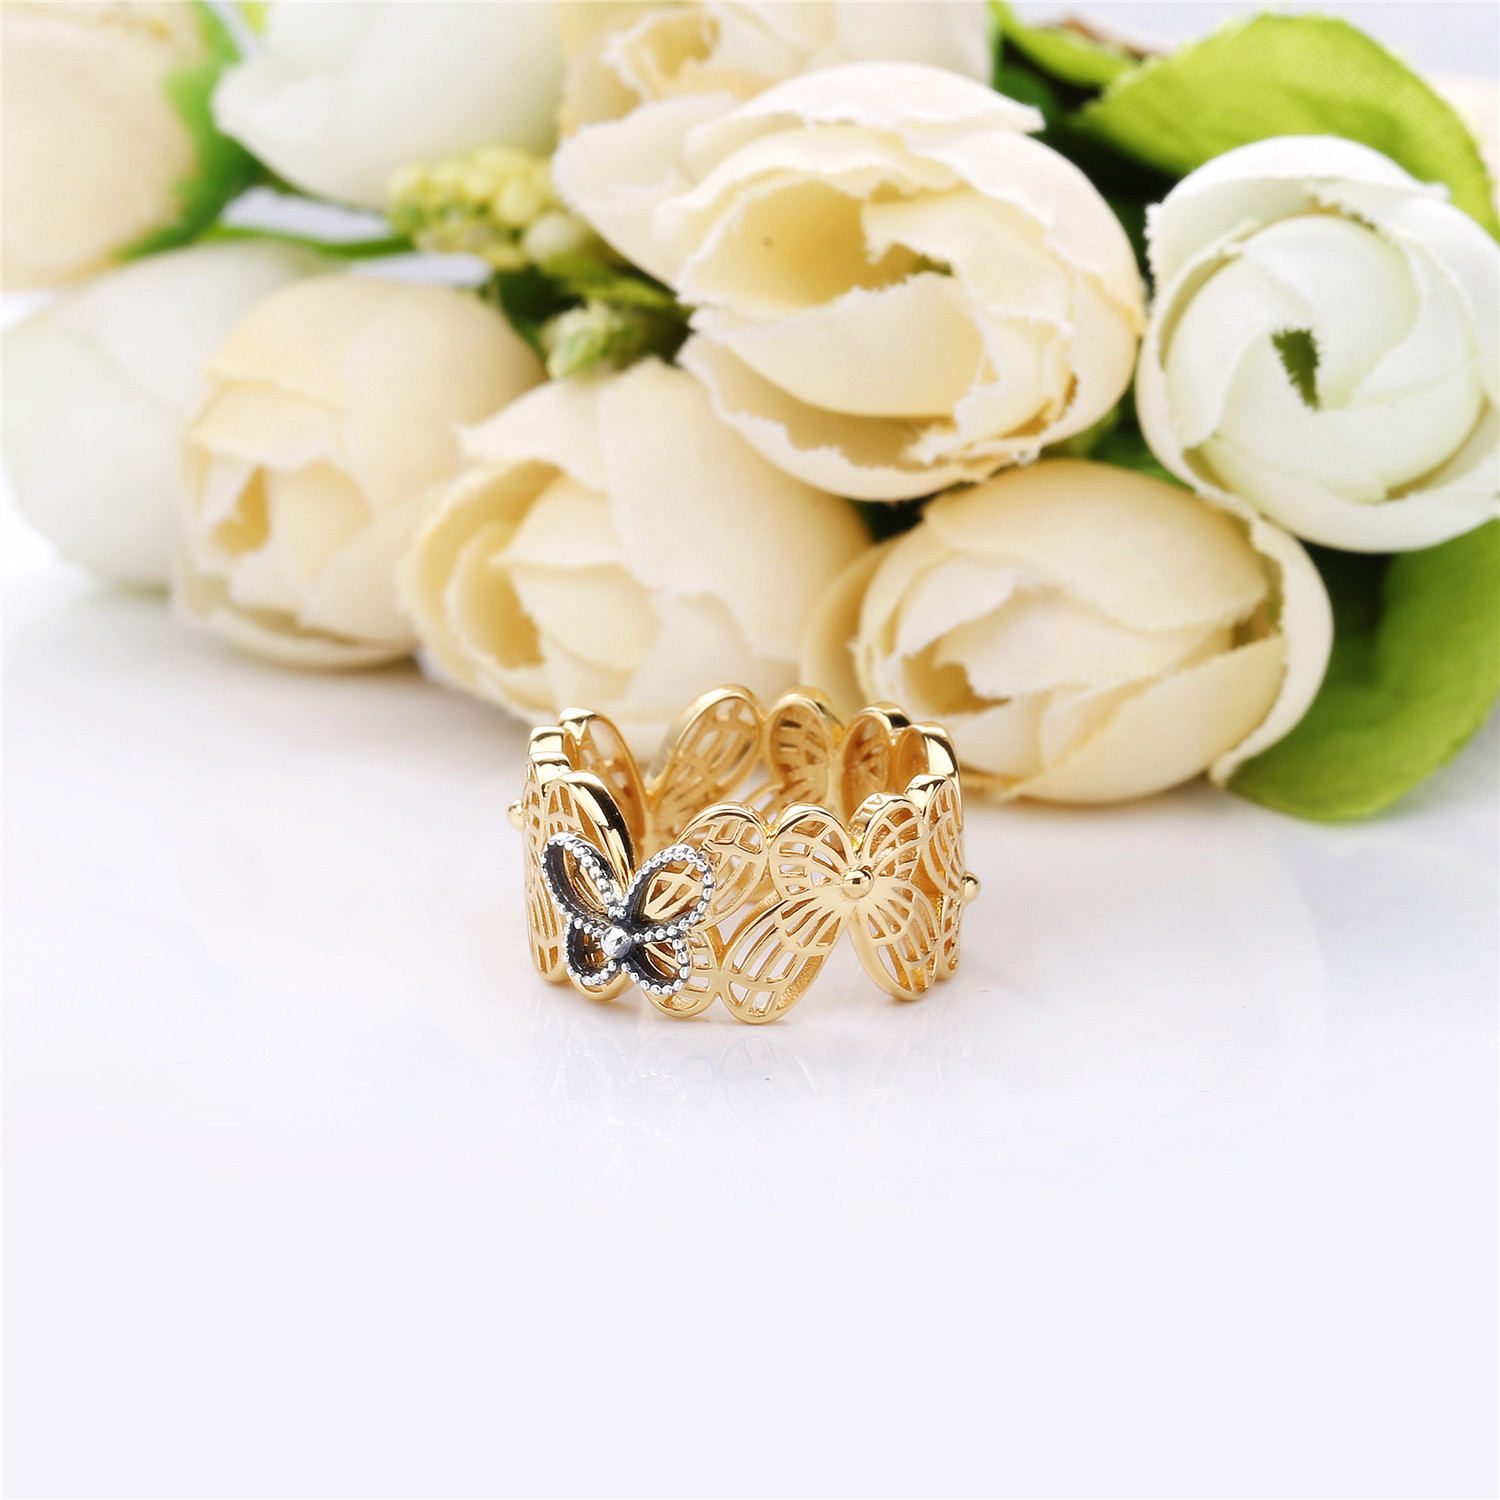 Openwork Butterflies Ring, Pandora Shine™ 167947 For Latest Openwork Butterfly Rings (View 15 of 25)